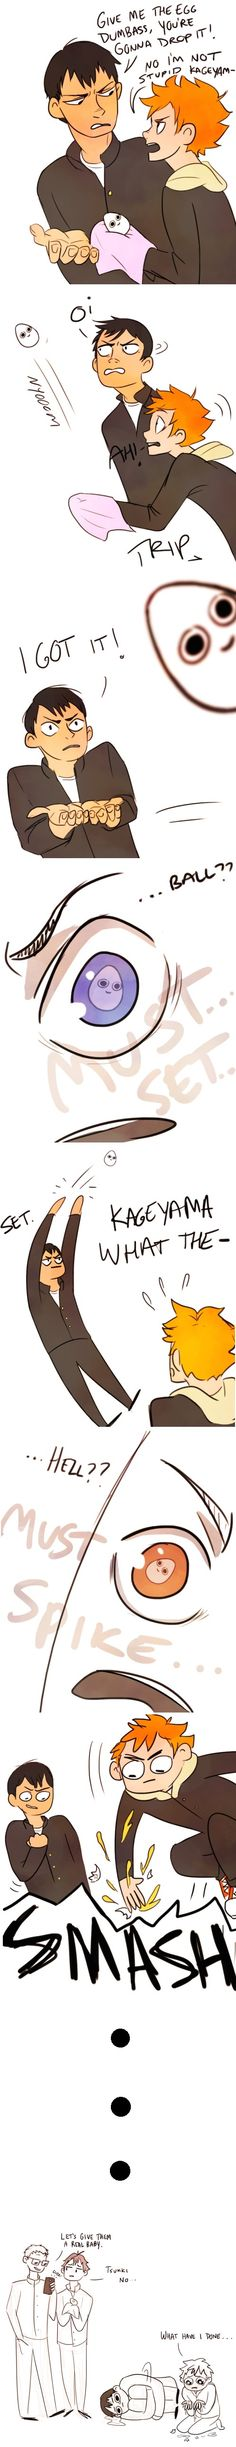 """Ball."" They're like dogs! THIS IS THE BEST THING IVE SEEN IN AWHILE  Haikyuu comic funny (Tumblr: Spatziline) / Kageyama / Hinata / hq / karasuno"